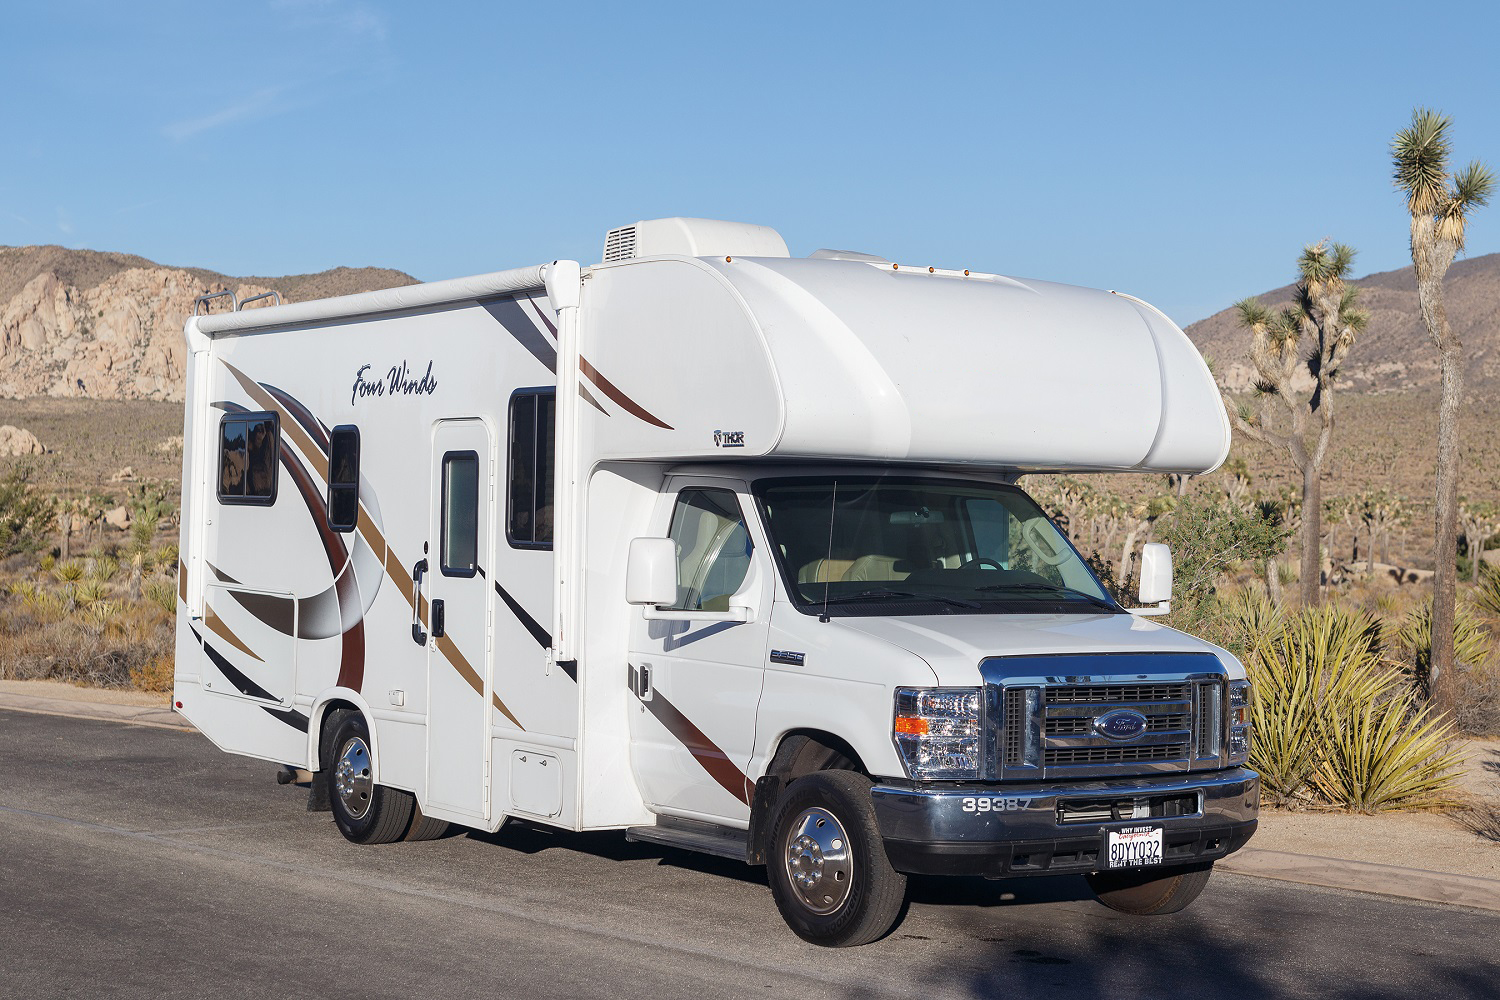 Compass Campers USA (International) C25 Class C Motorhome